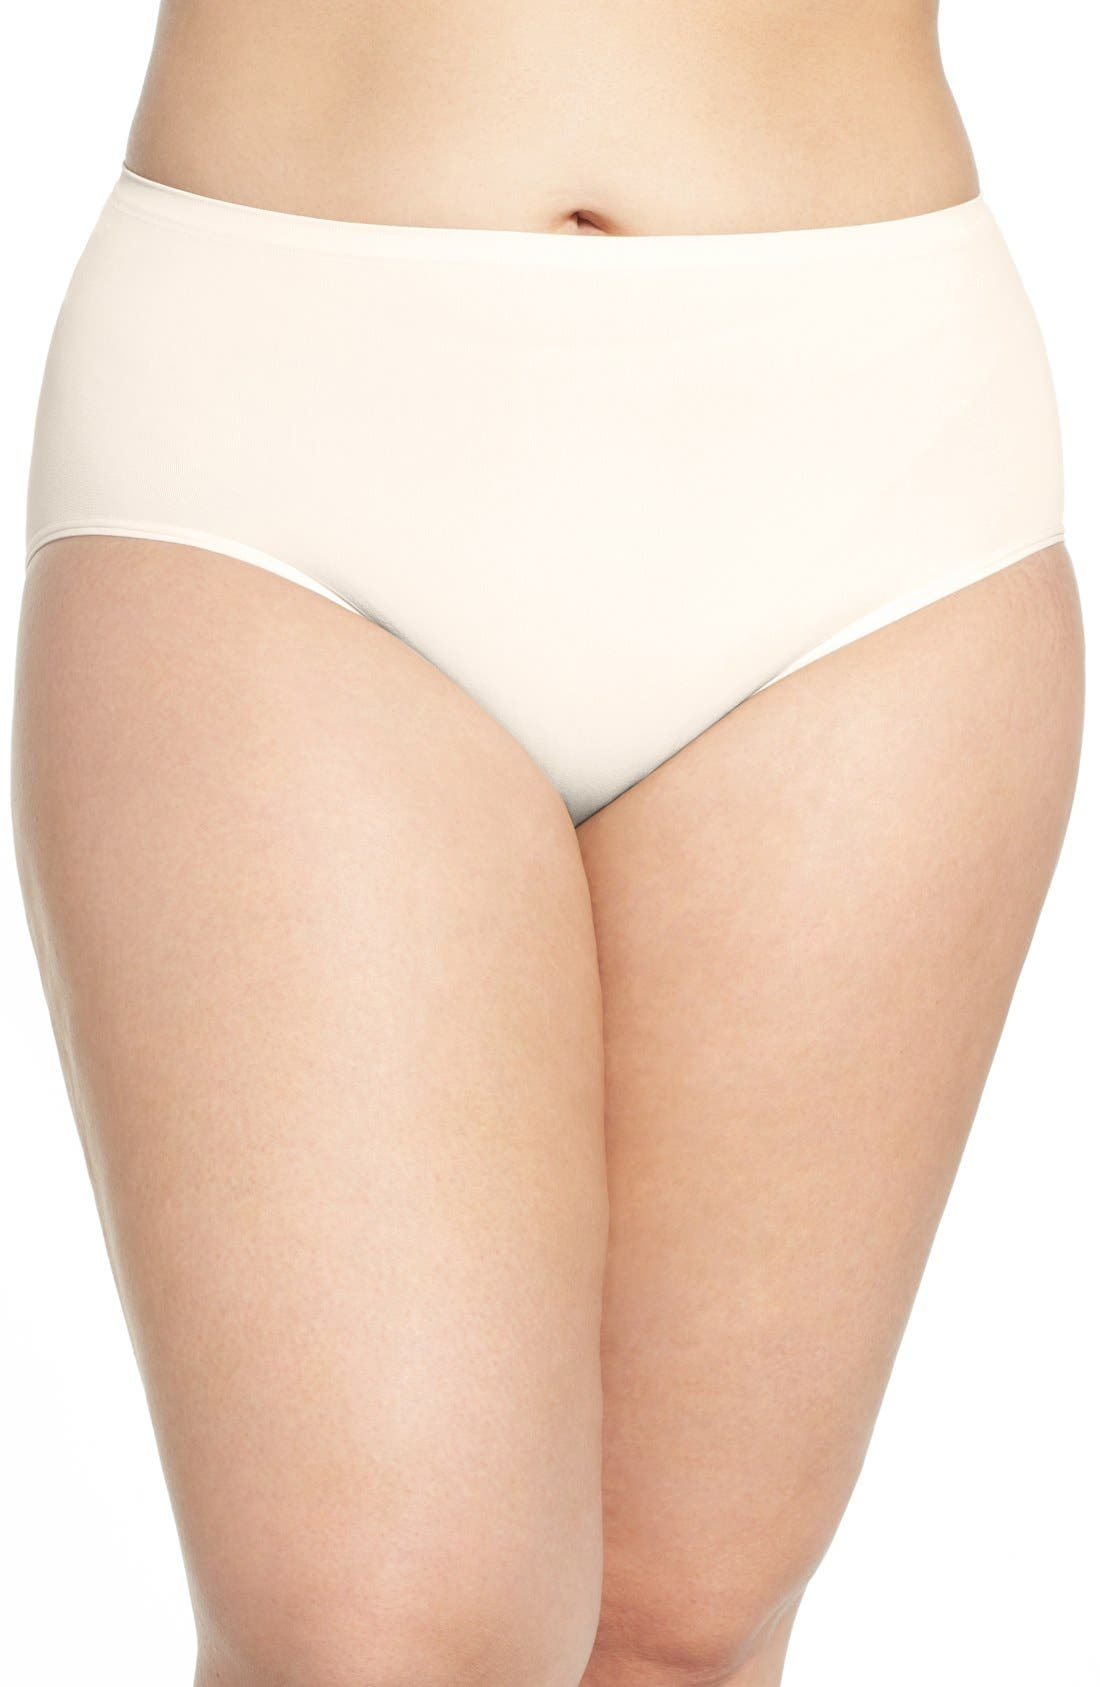 Nordstrom Lingerie Seamless Briefs (Plus Size) (4 for $34)